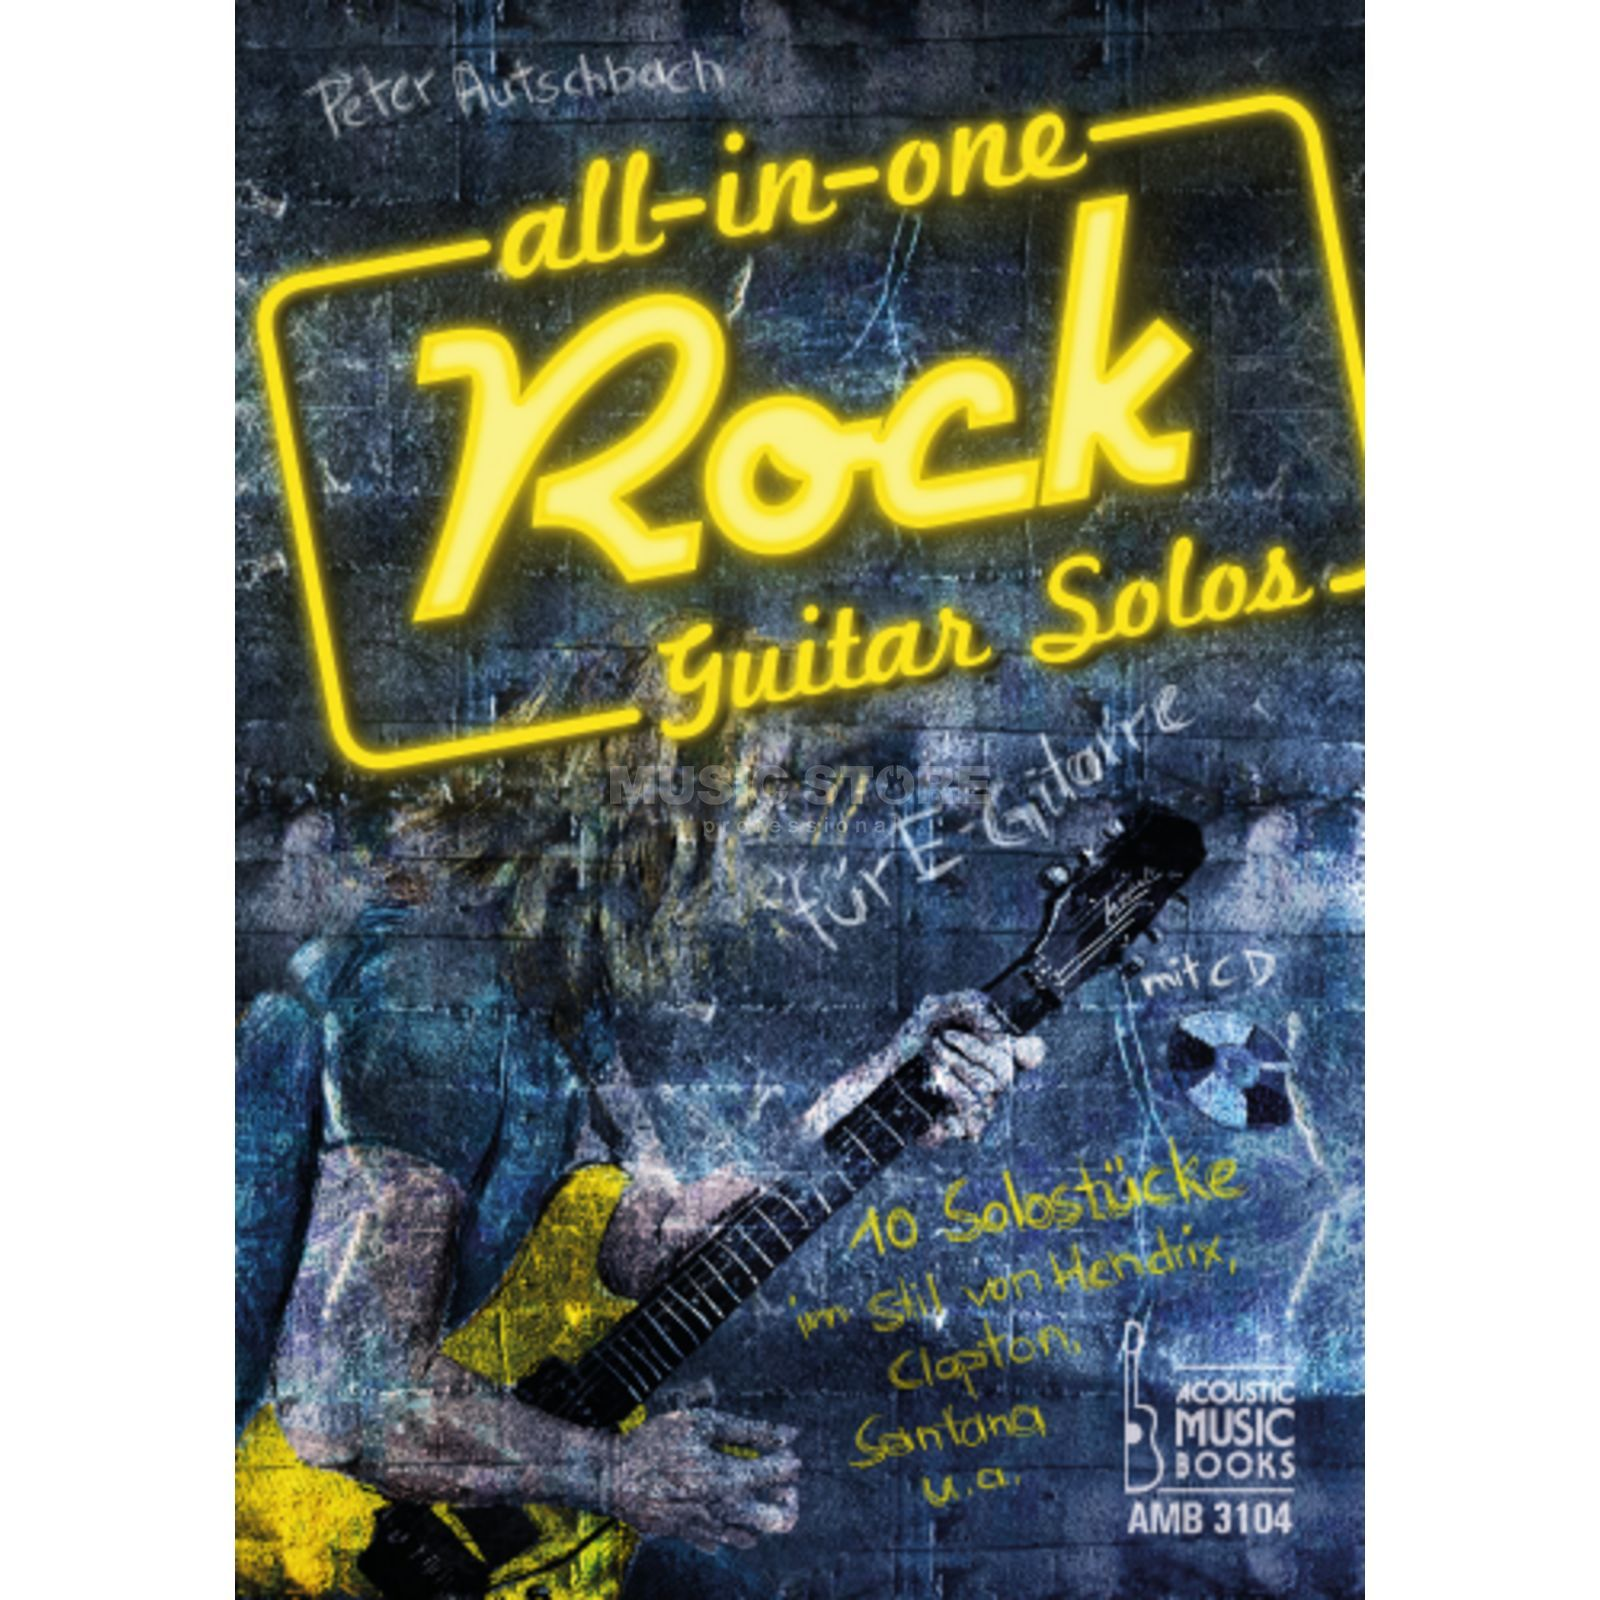 Acoustic Music Books All in One Rock Guitar Solos Peter Autschbach Produktbillede